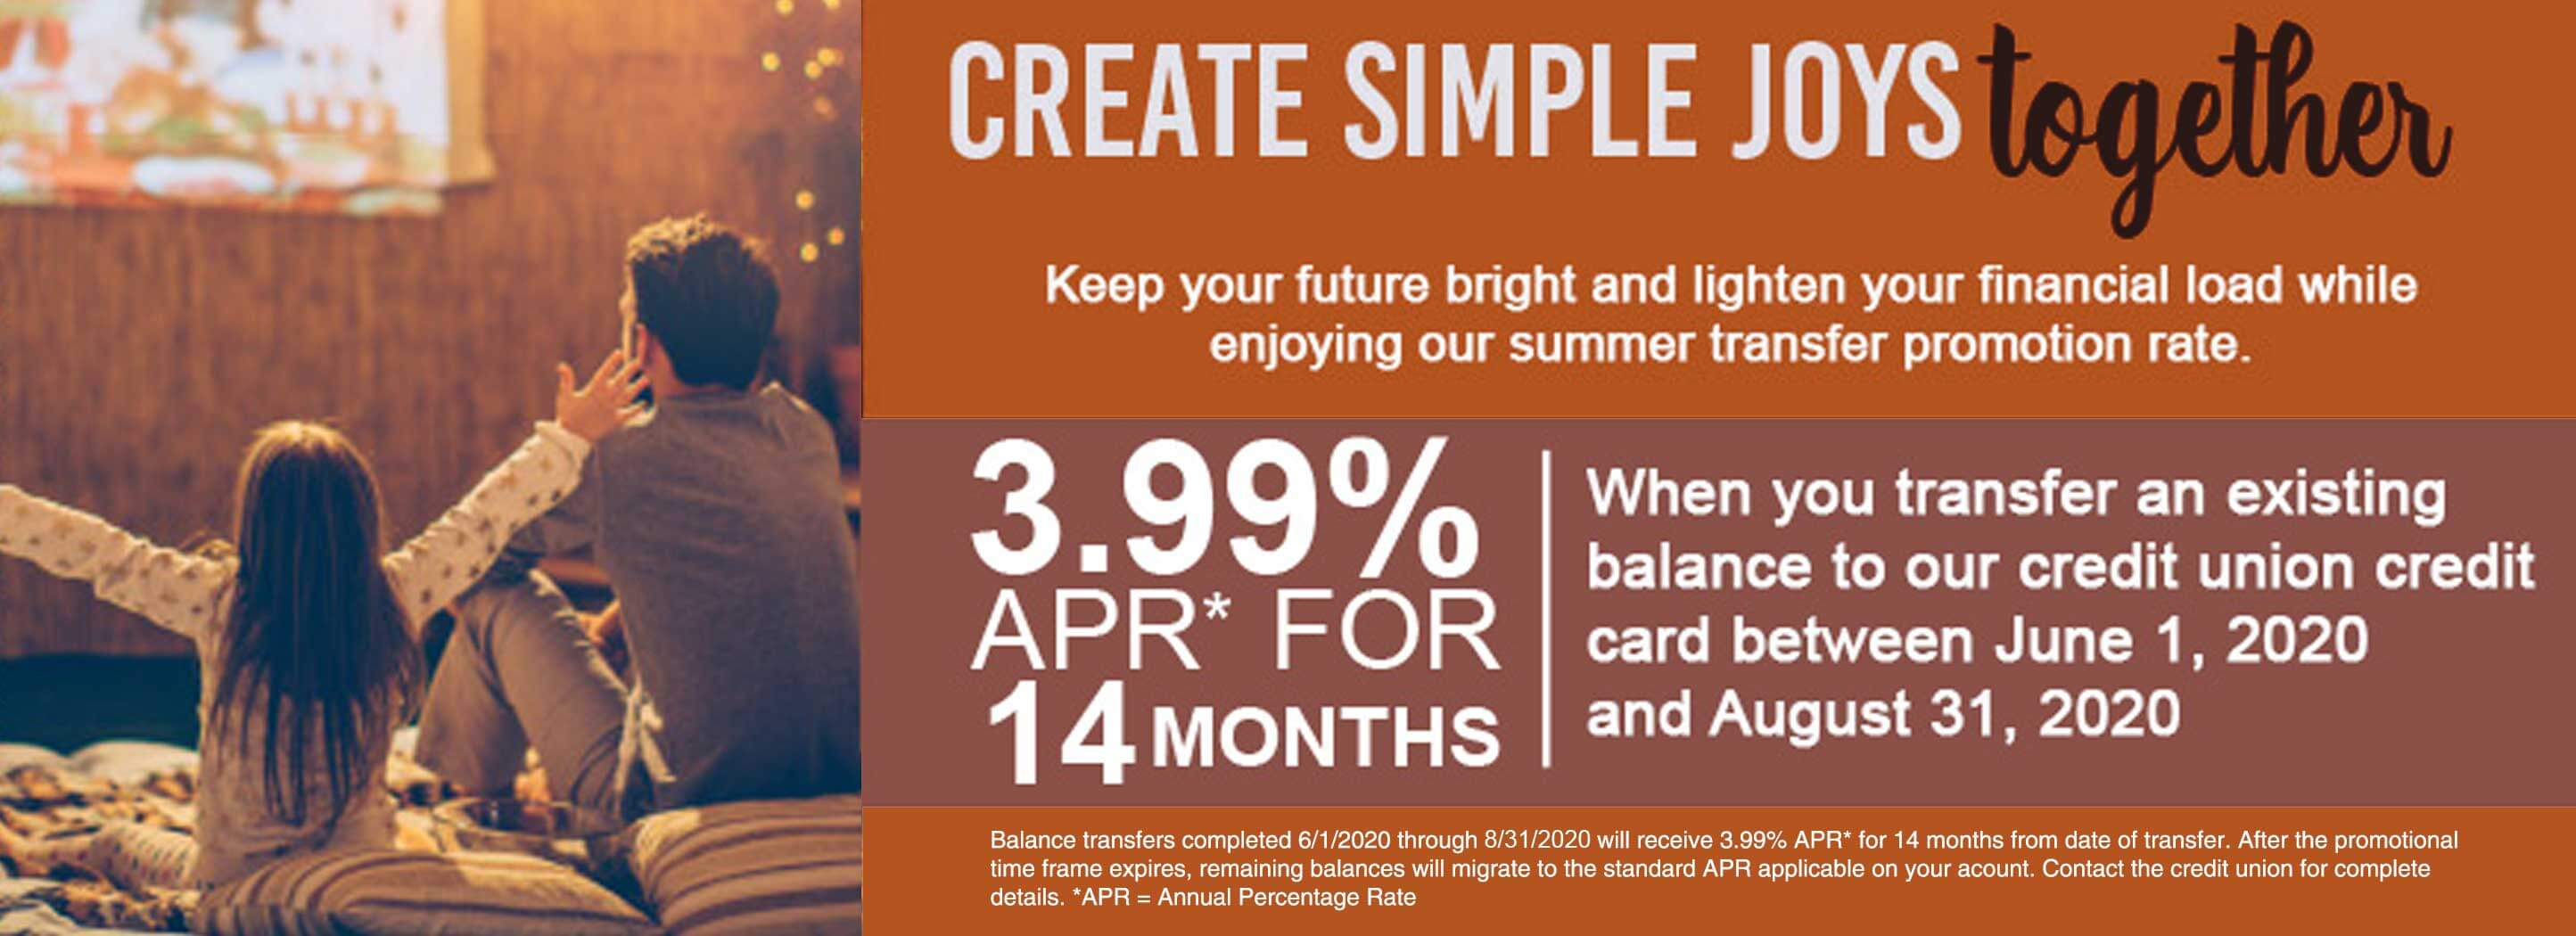 3.99% APR for 14 months when you transfer an existing balance to our credit union credit card between June1, 2020 and August 31, 2020